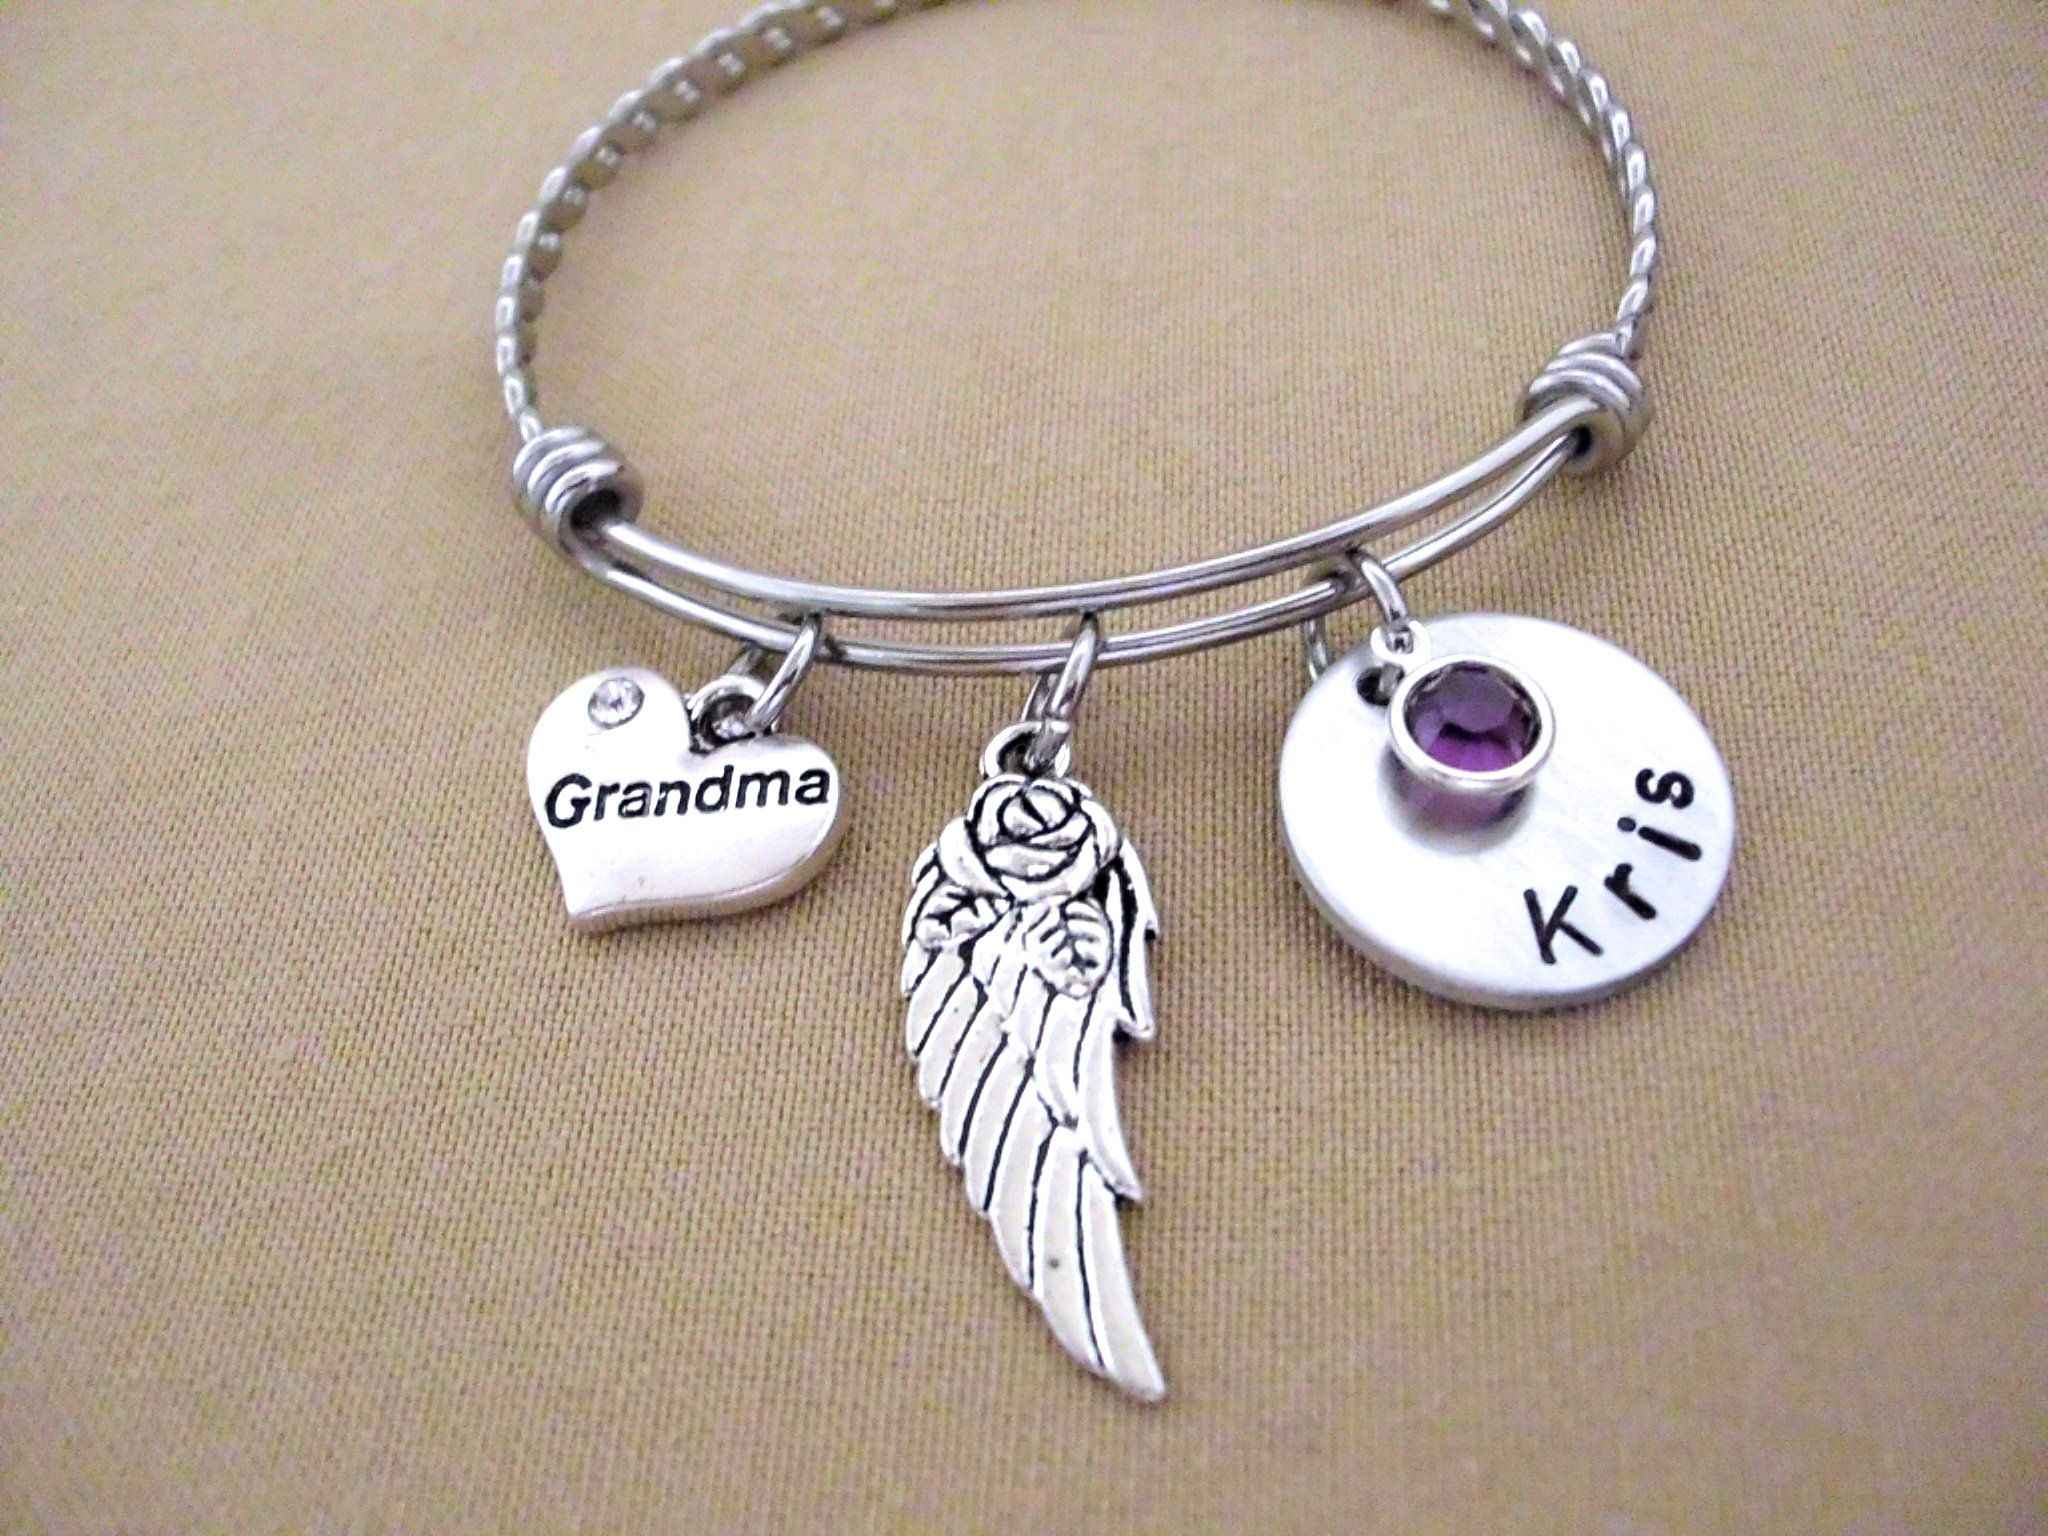 35++ Memorial jewelry for loss of grandmother ideas in 2021